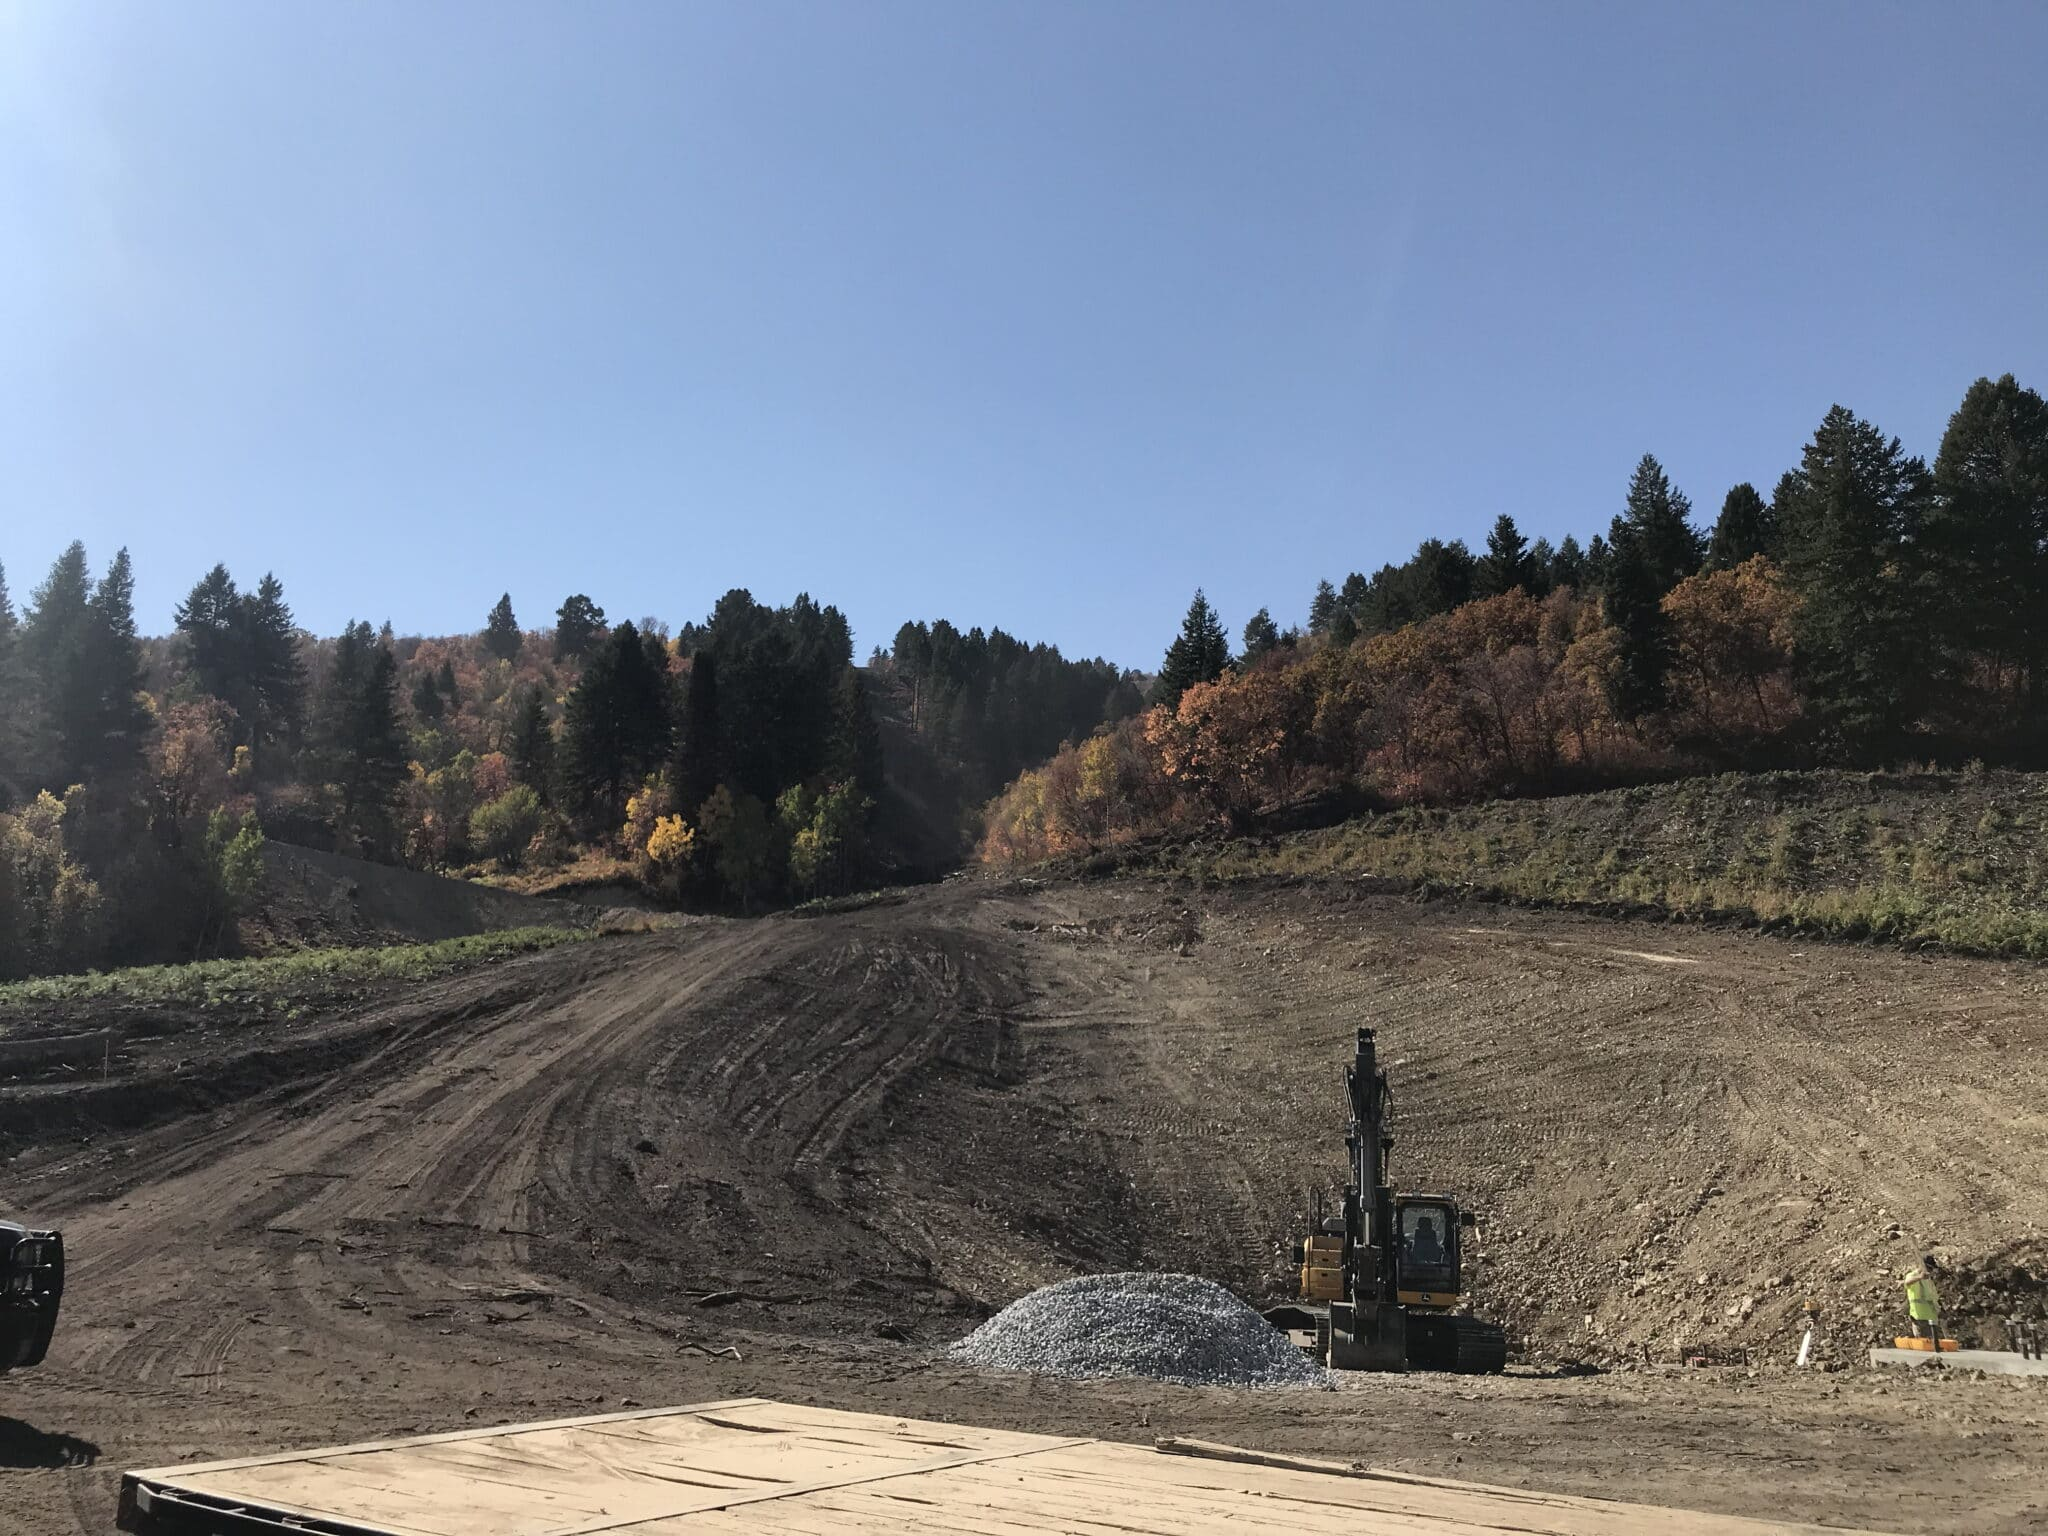 Looking up the new lift line from the base area